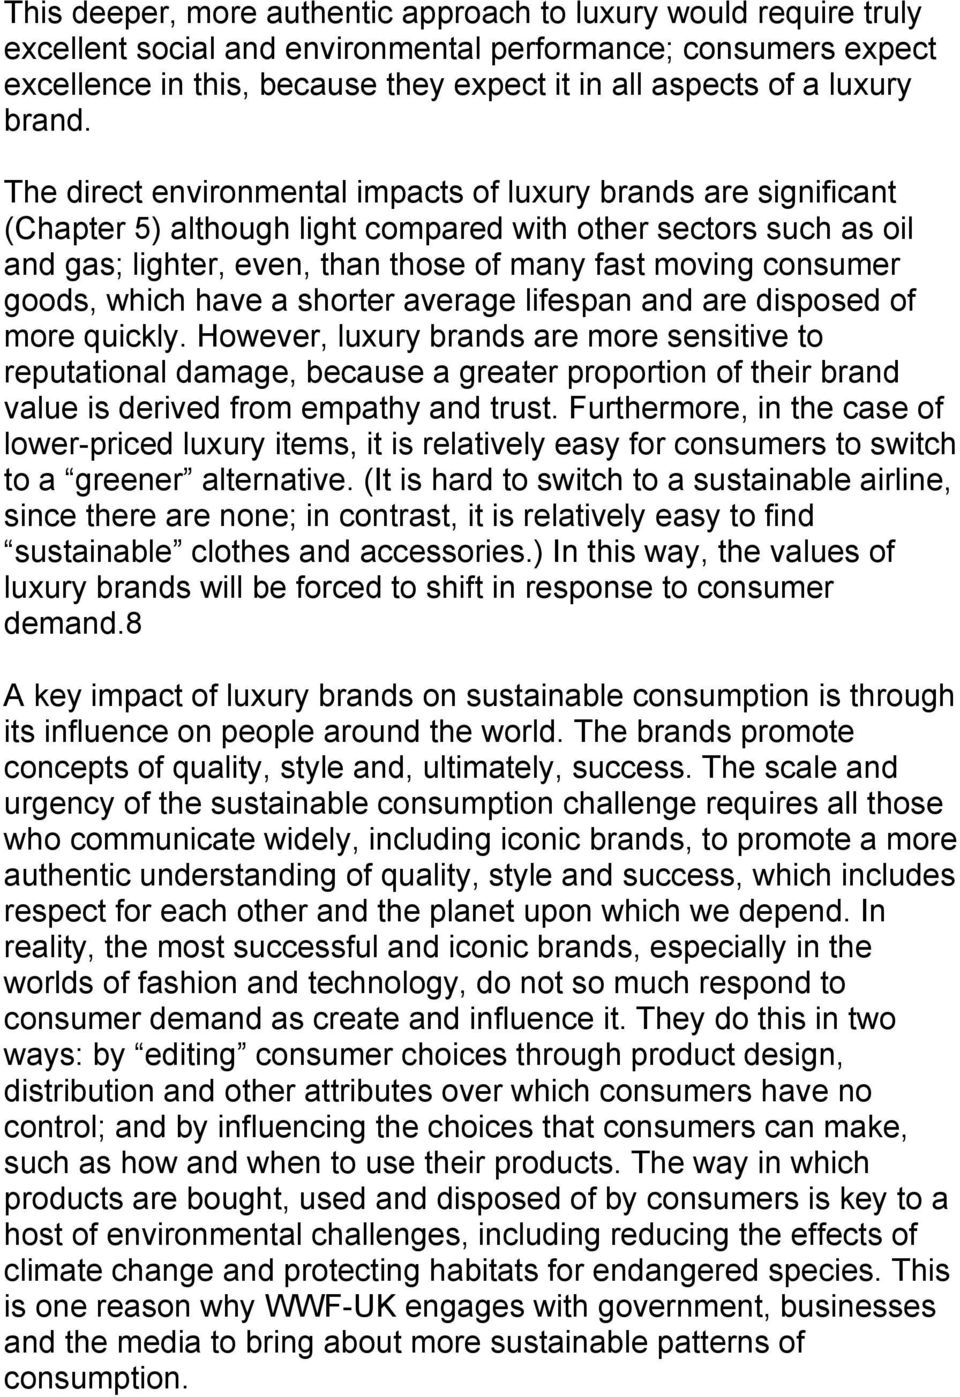 The direct environmental impacts of luxury brands are significant (Chapter 5) although light compared with other sectors such as oil and gas; lighter, even, than those of many fast moving consumer